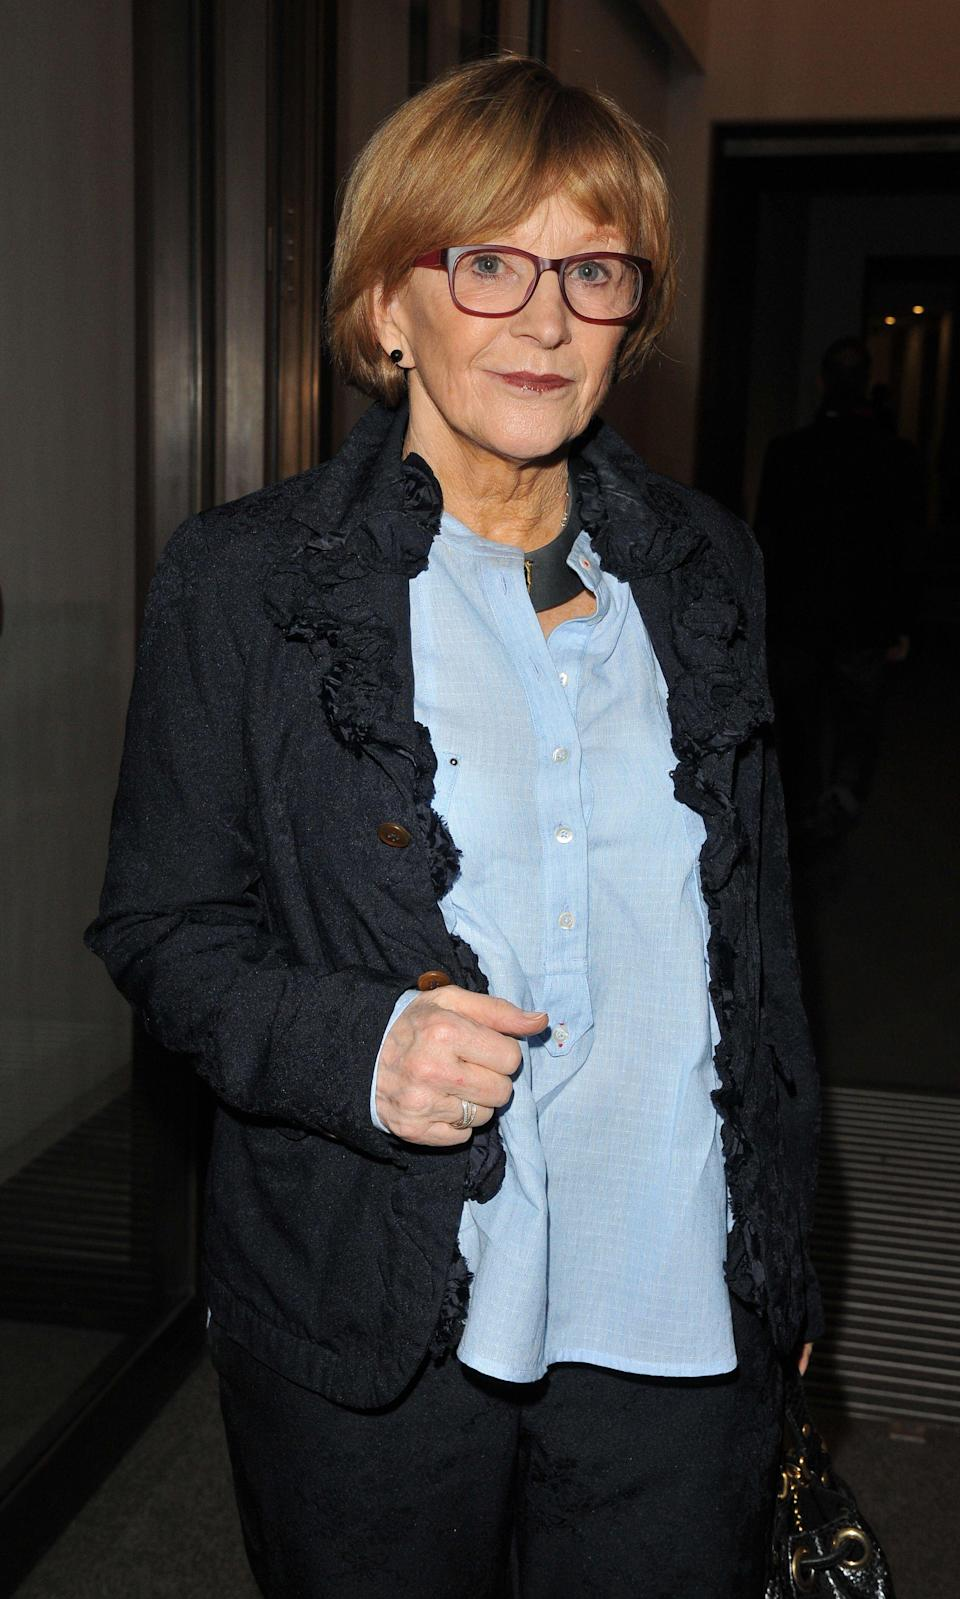 Anne Robinson pictured in 2017 (Photo: Can Nguyen/Shutterstock)